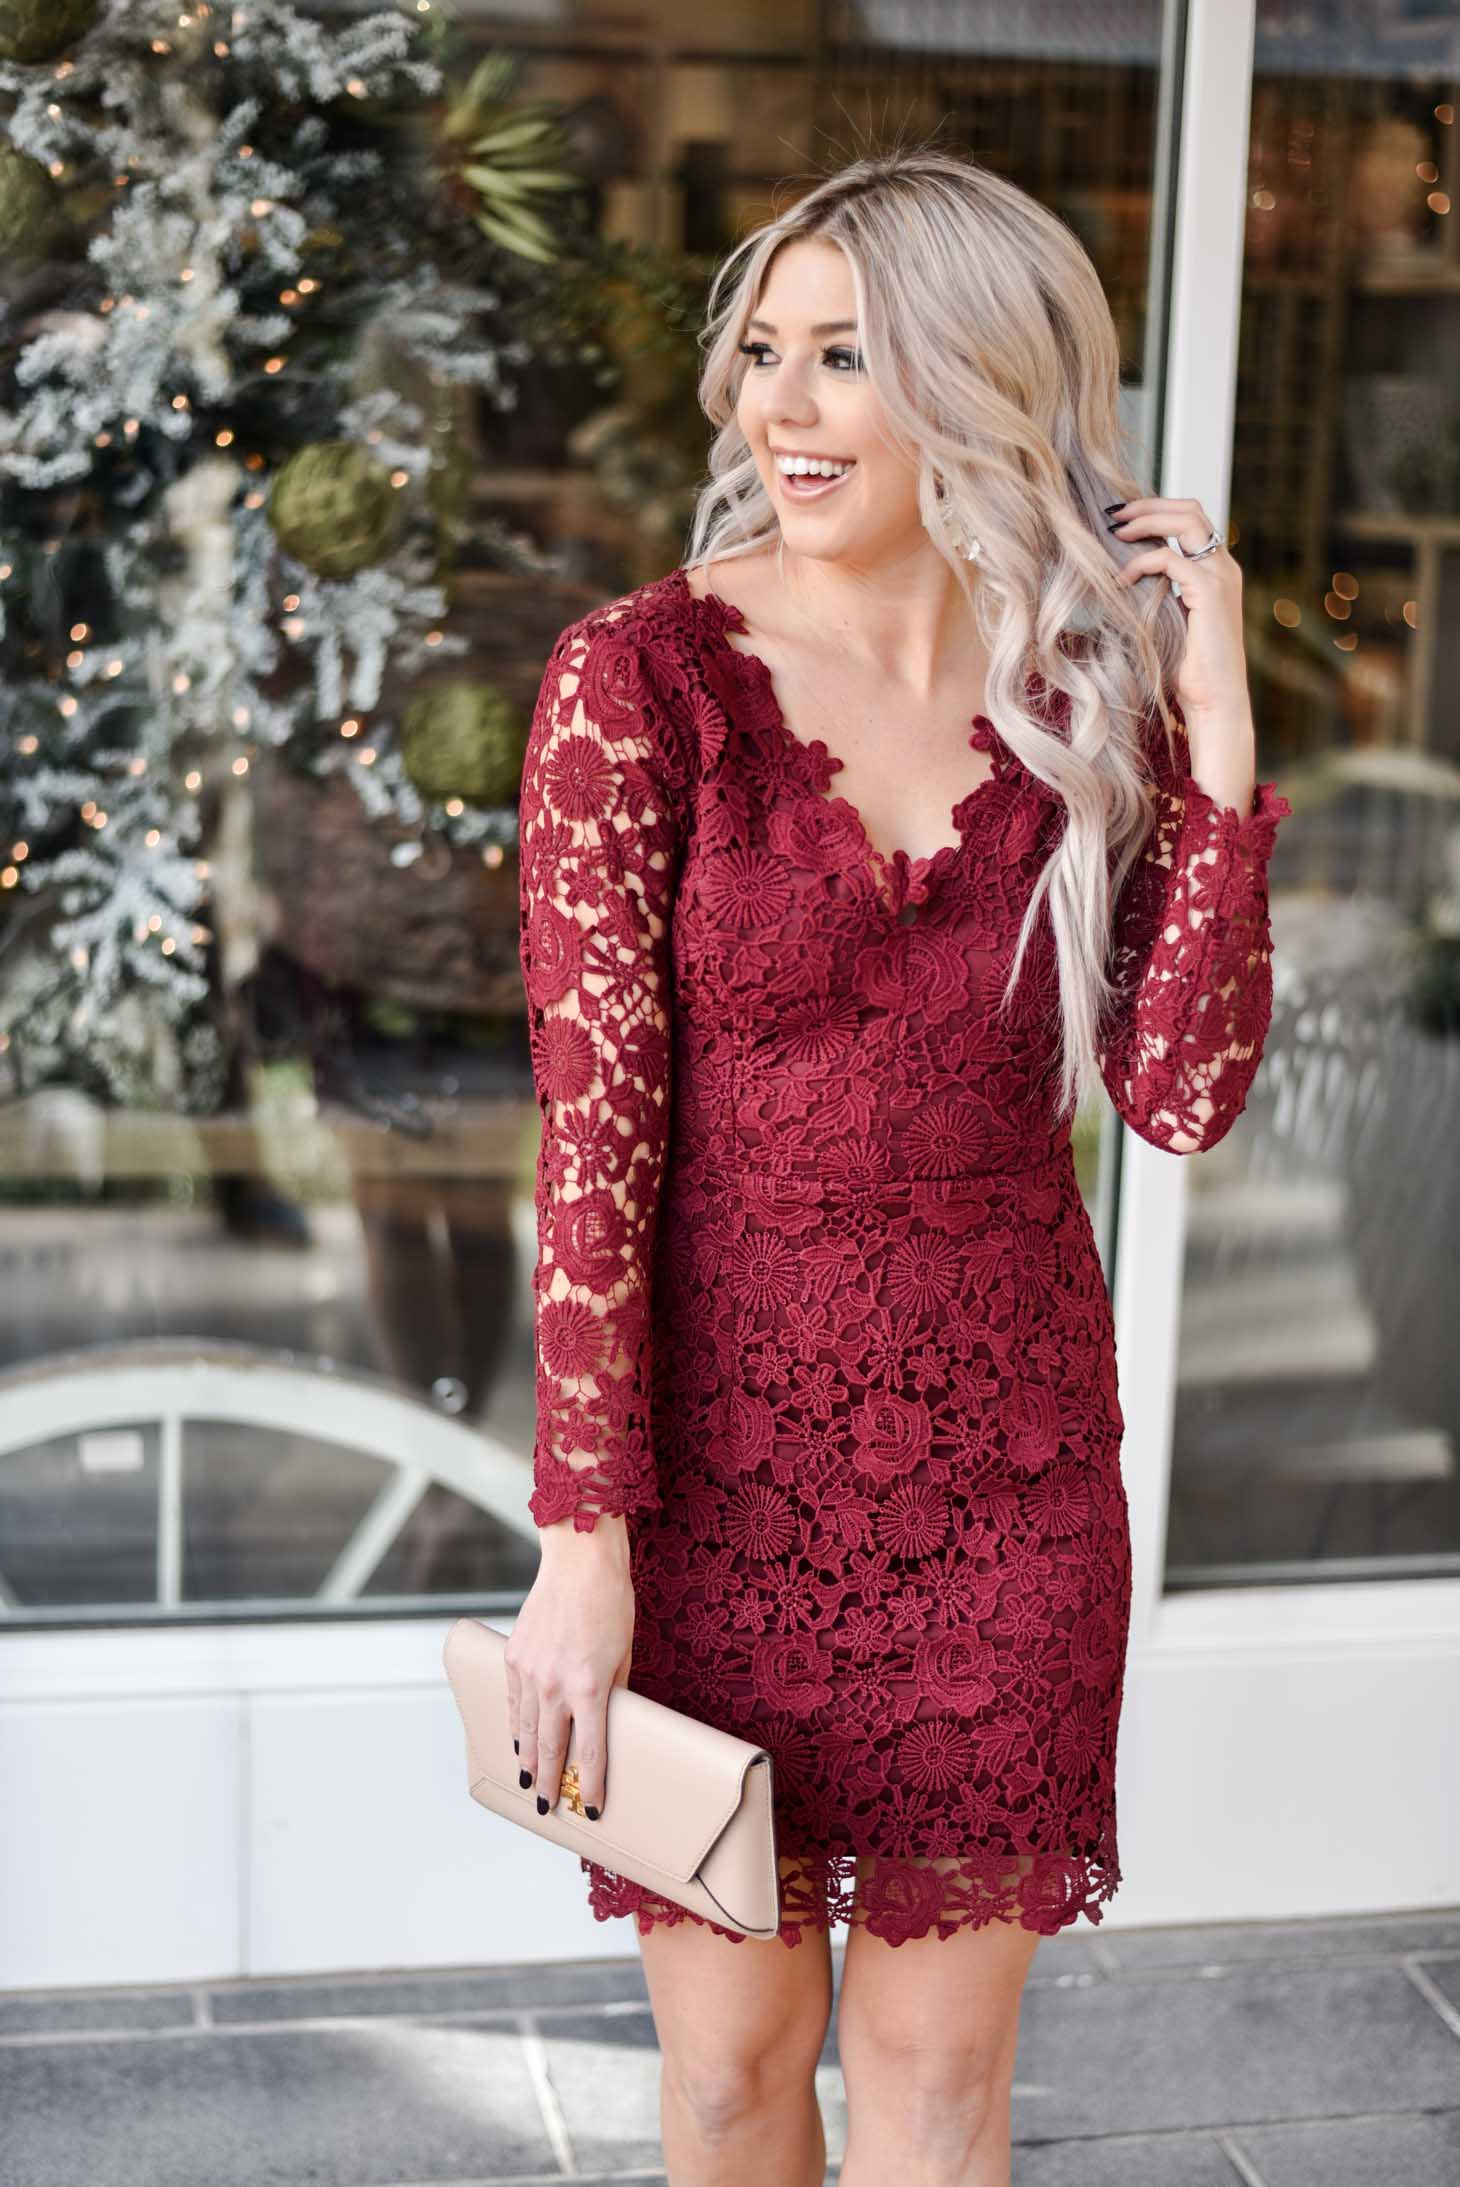 Erin Elizabeth of Wink and a Twirl shares the perfect holiday red lace dress for the holidays from Valentina Boulevard